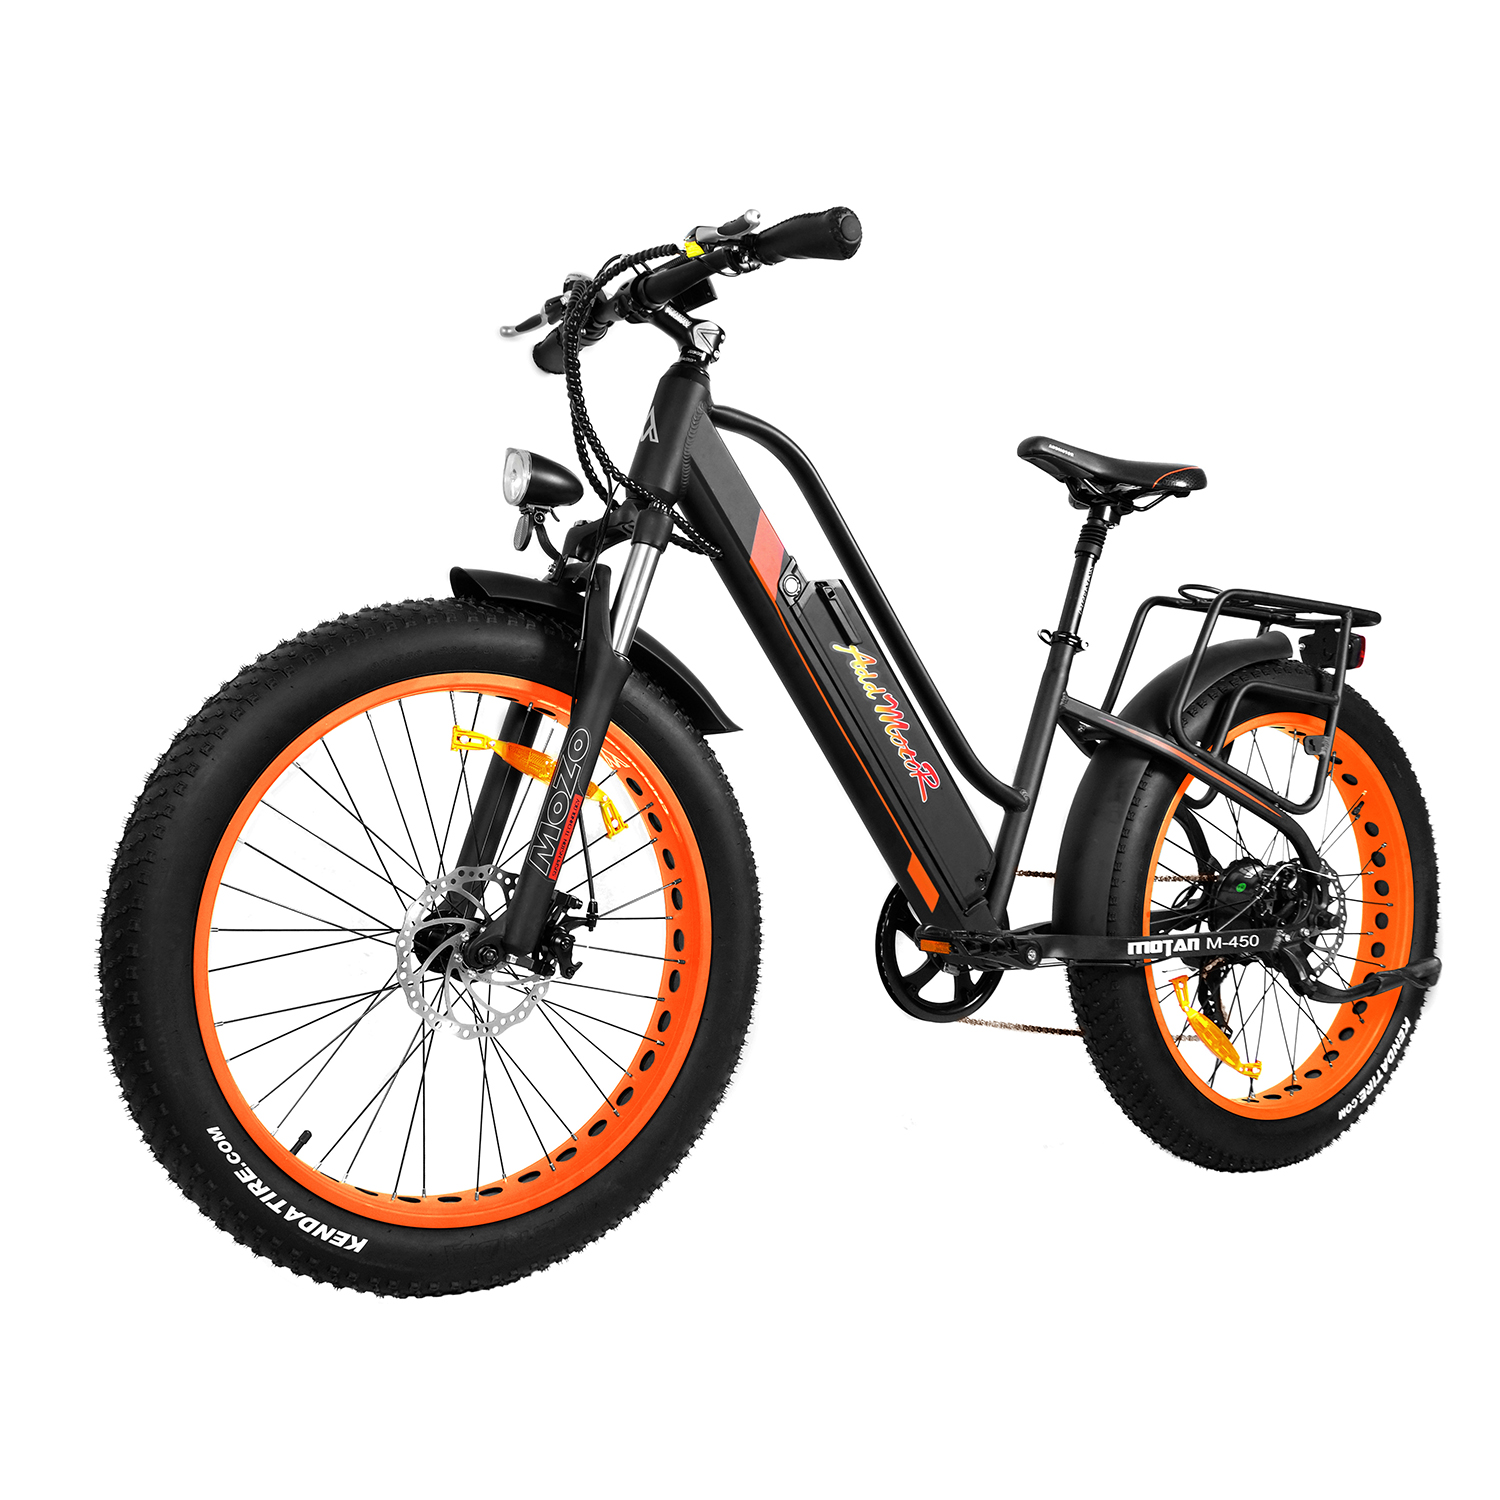 Electric Bikes Walmart Prices Wiring Diagram And Ebooks